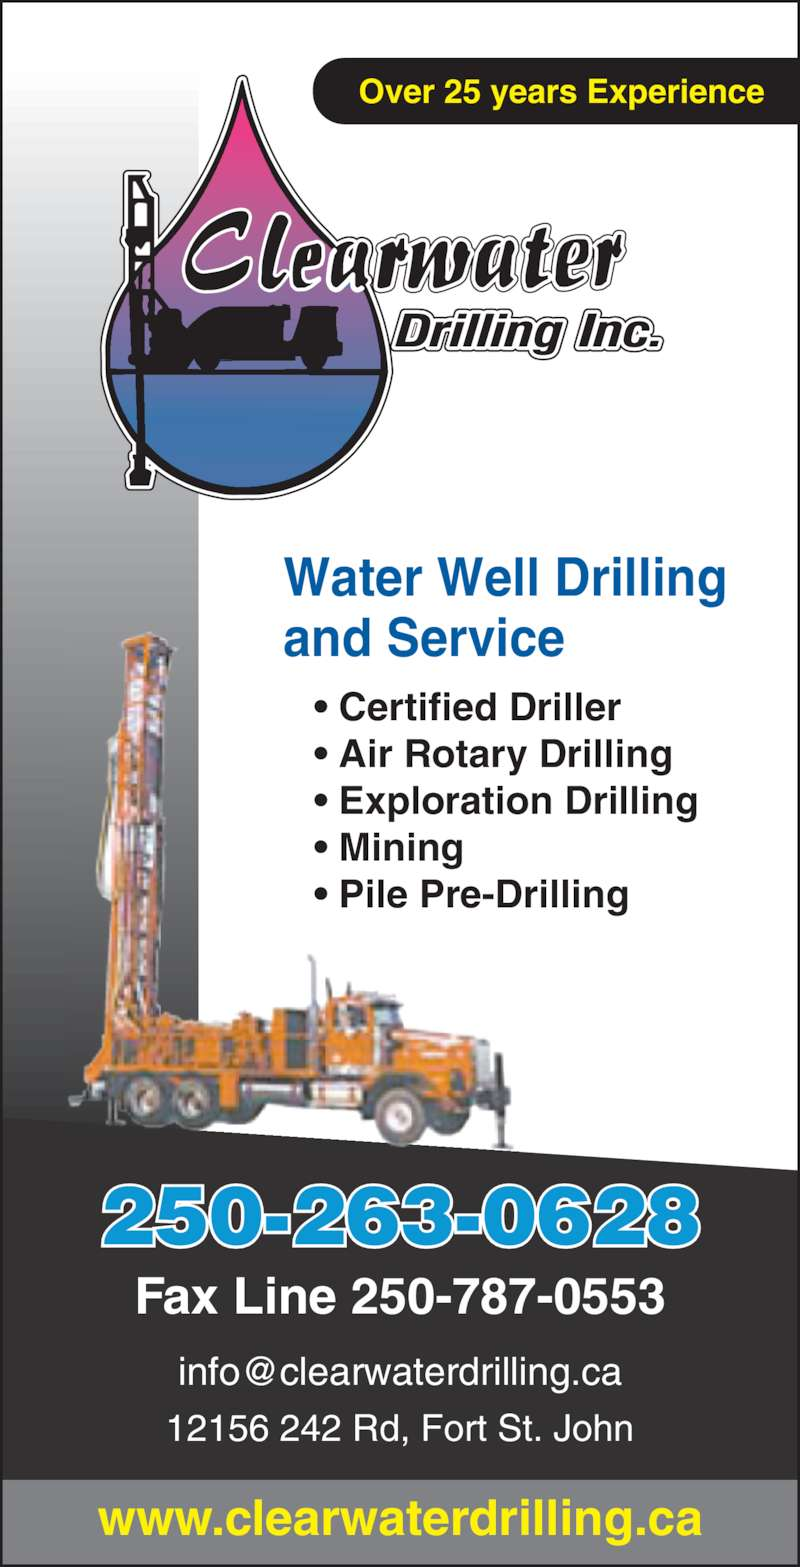 Clear Water Drilling Inc (250-785-6818) - Display Ad - Over 25 years Experience Fax Line 250-787-0553 12156 242 Rd, Fort St. John 250-263-0628 www.clearwaterdrilling.ca ? Certified Driller ? Exploration Drilling ? Mining ? Pile Pre-Drilling Water Well Drilling and Service ? Air Rotary Drilling